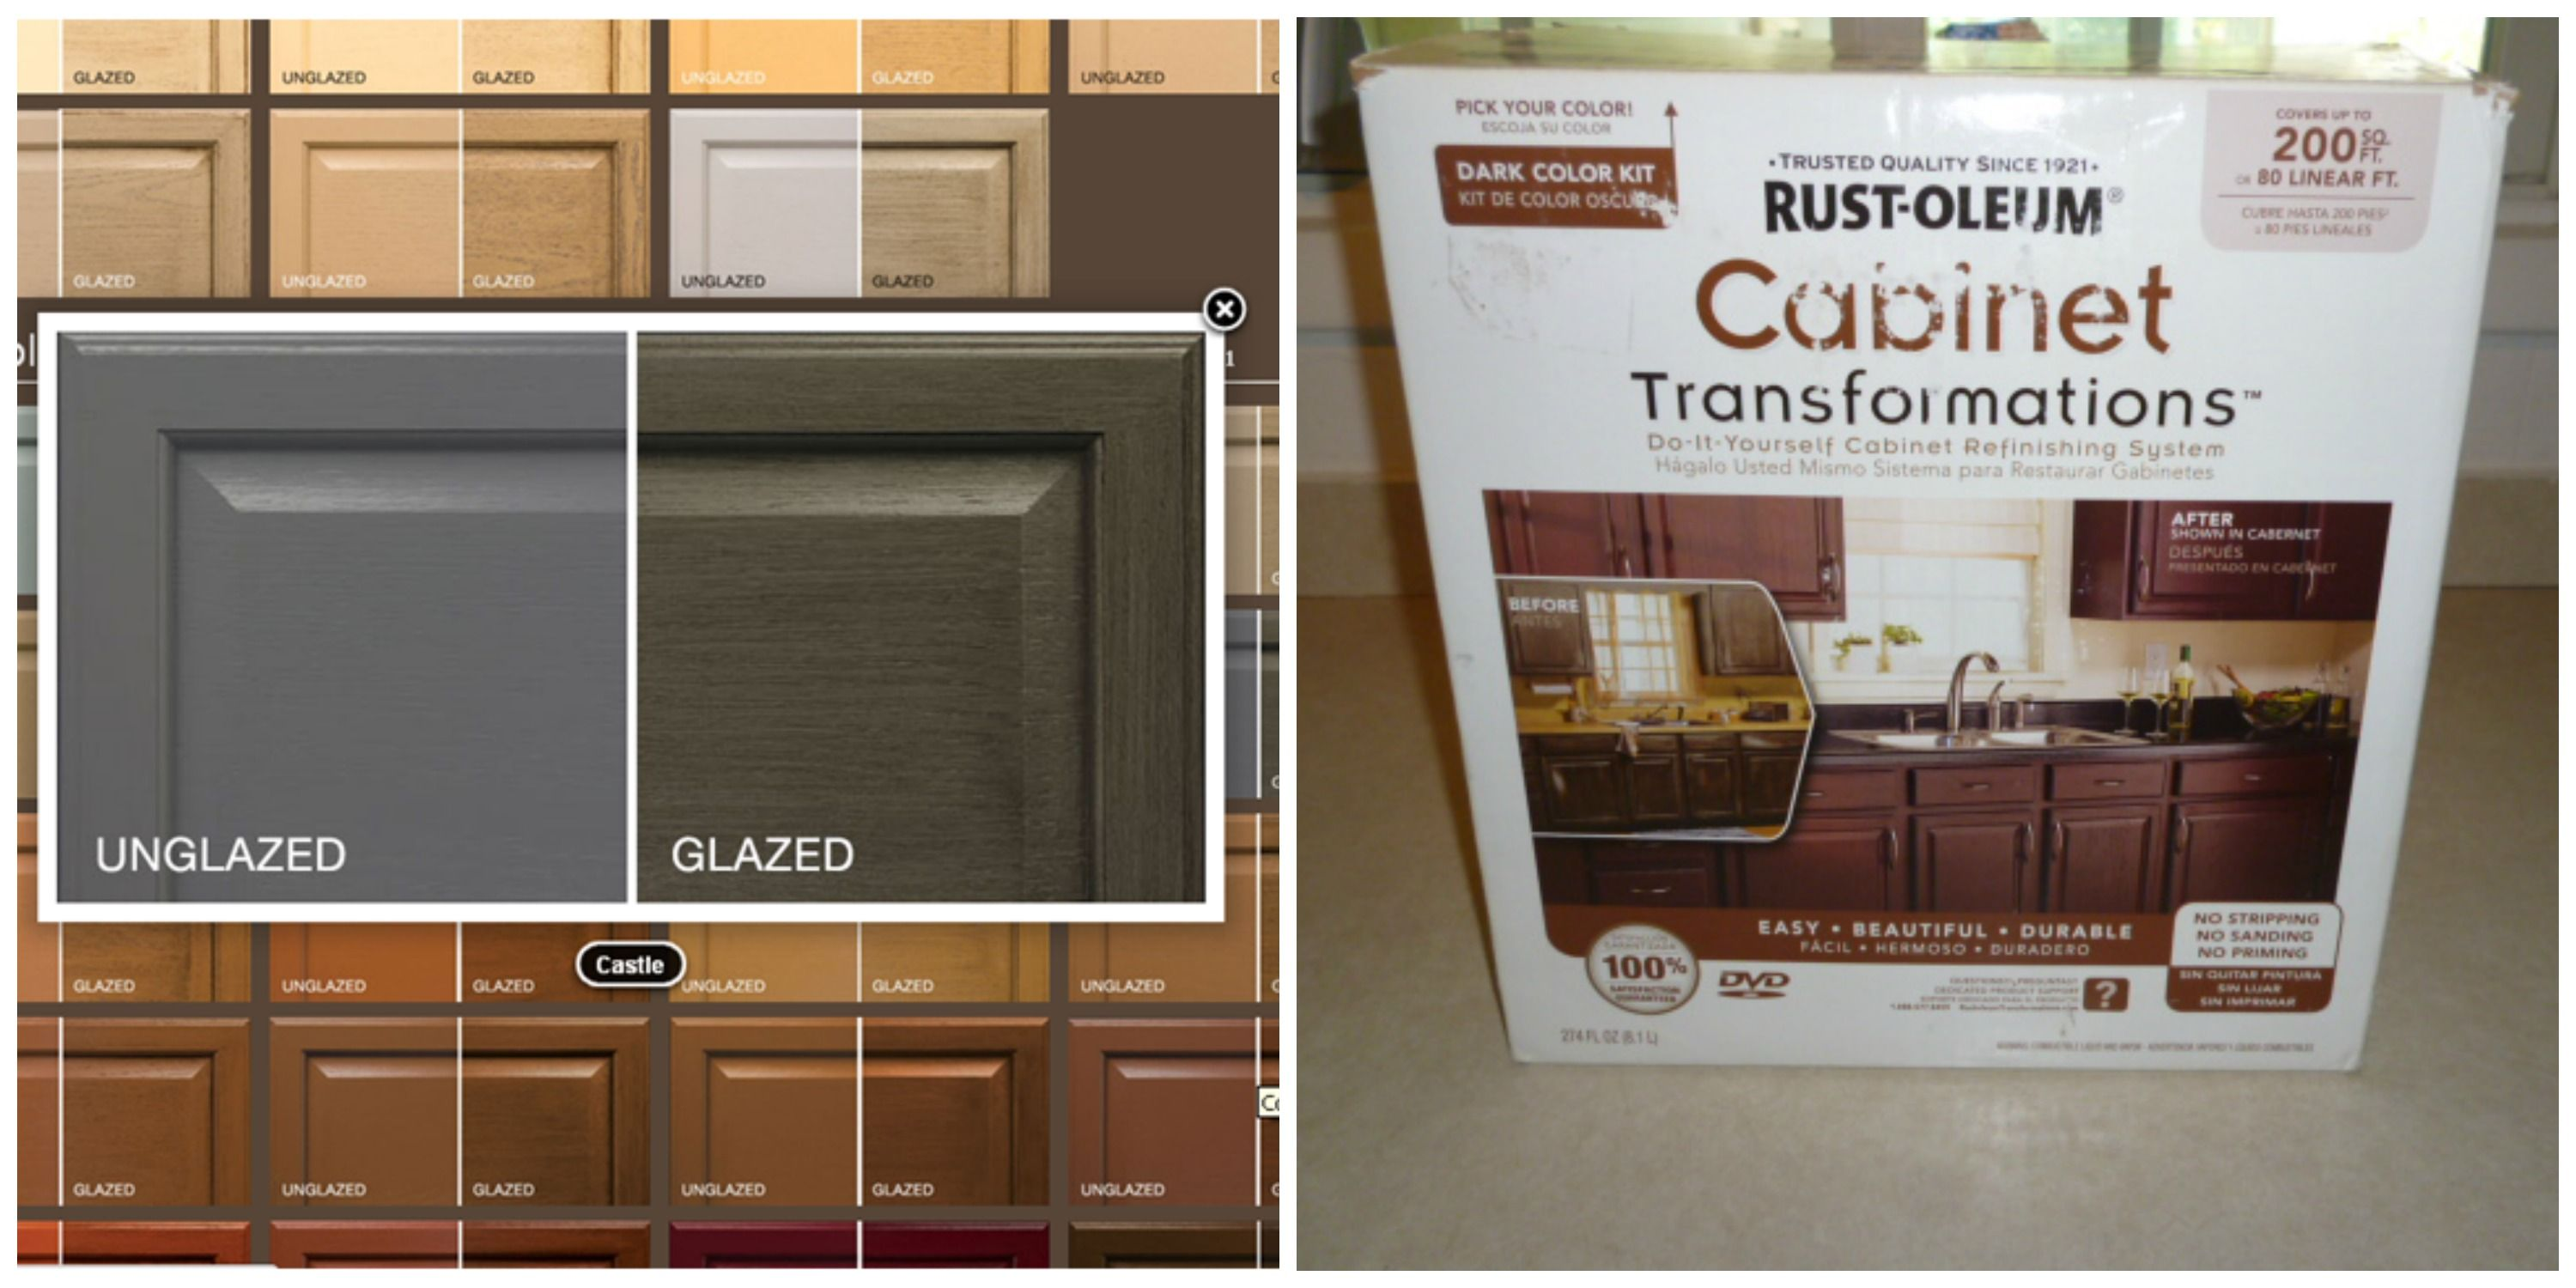 castle kit collage   For the Home: Kitchen Remodel   Pinterest